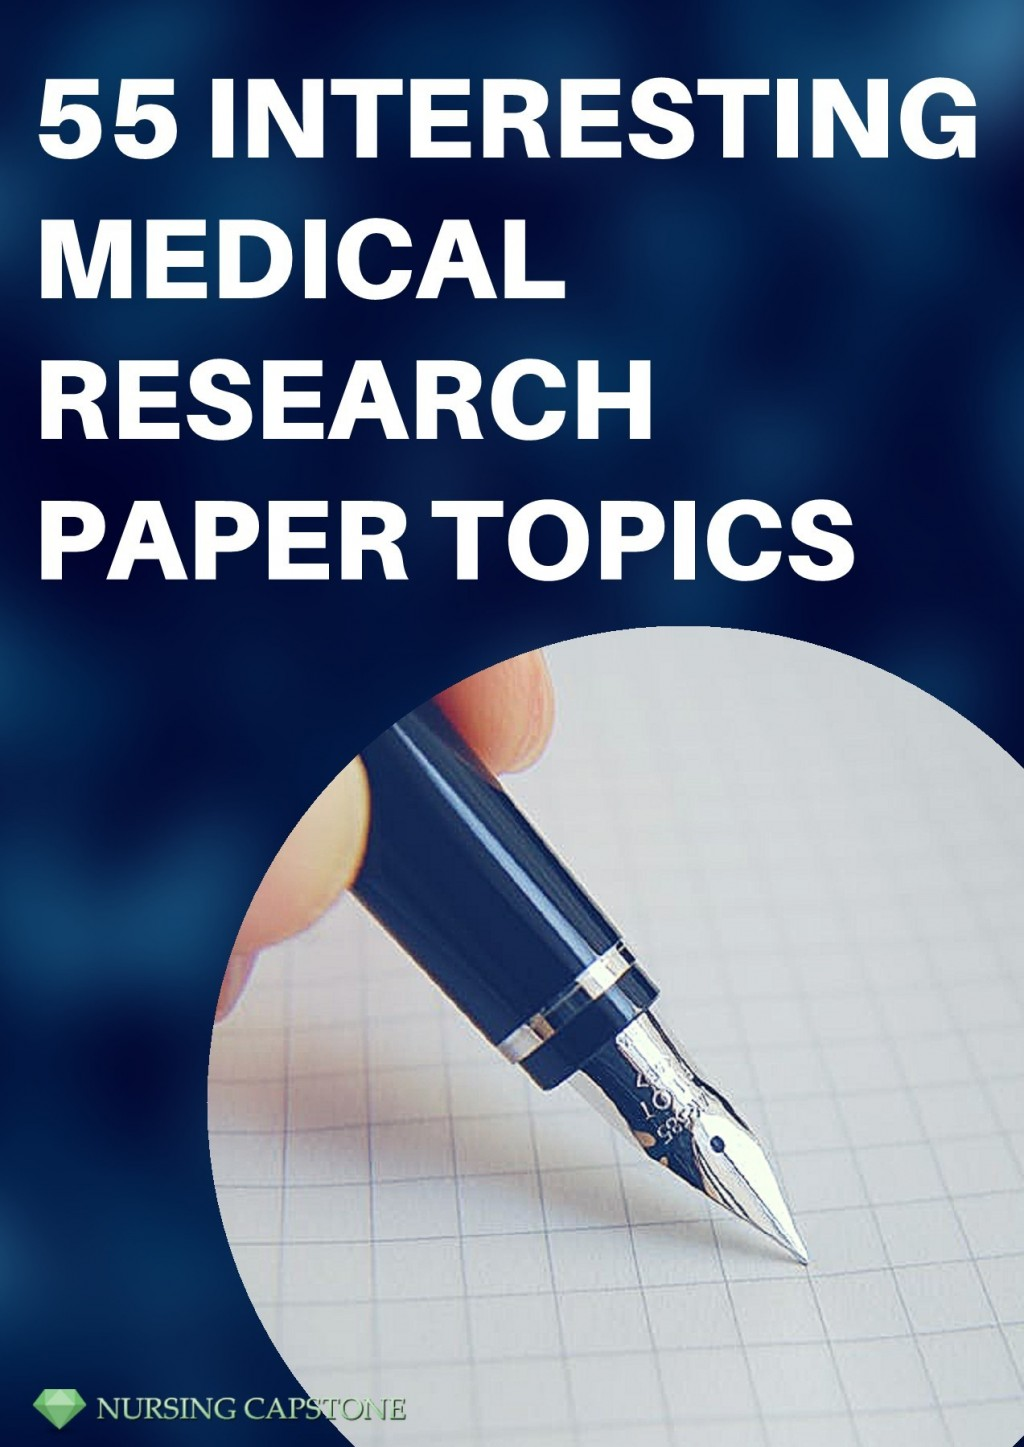 011 Medical Research Paper Topics For College Students Imposing Large